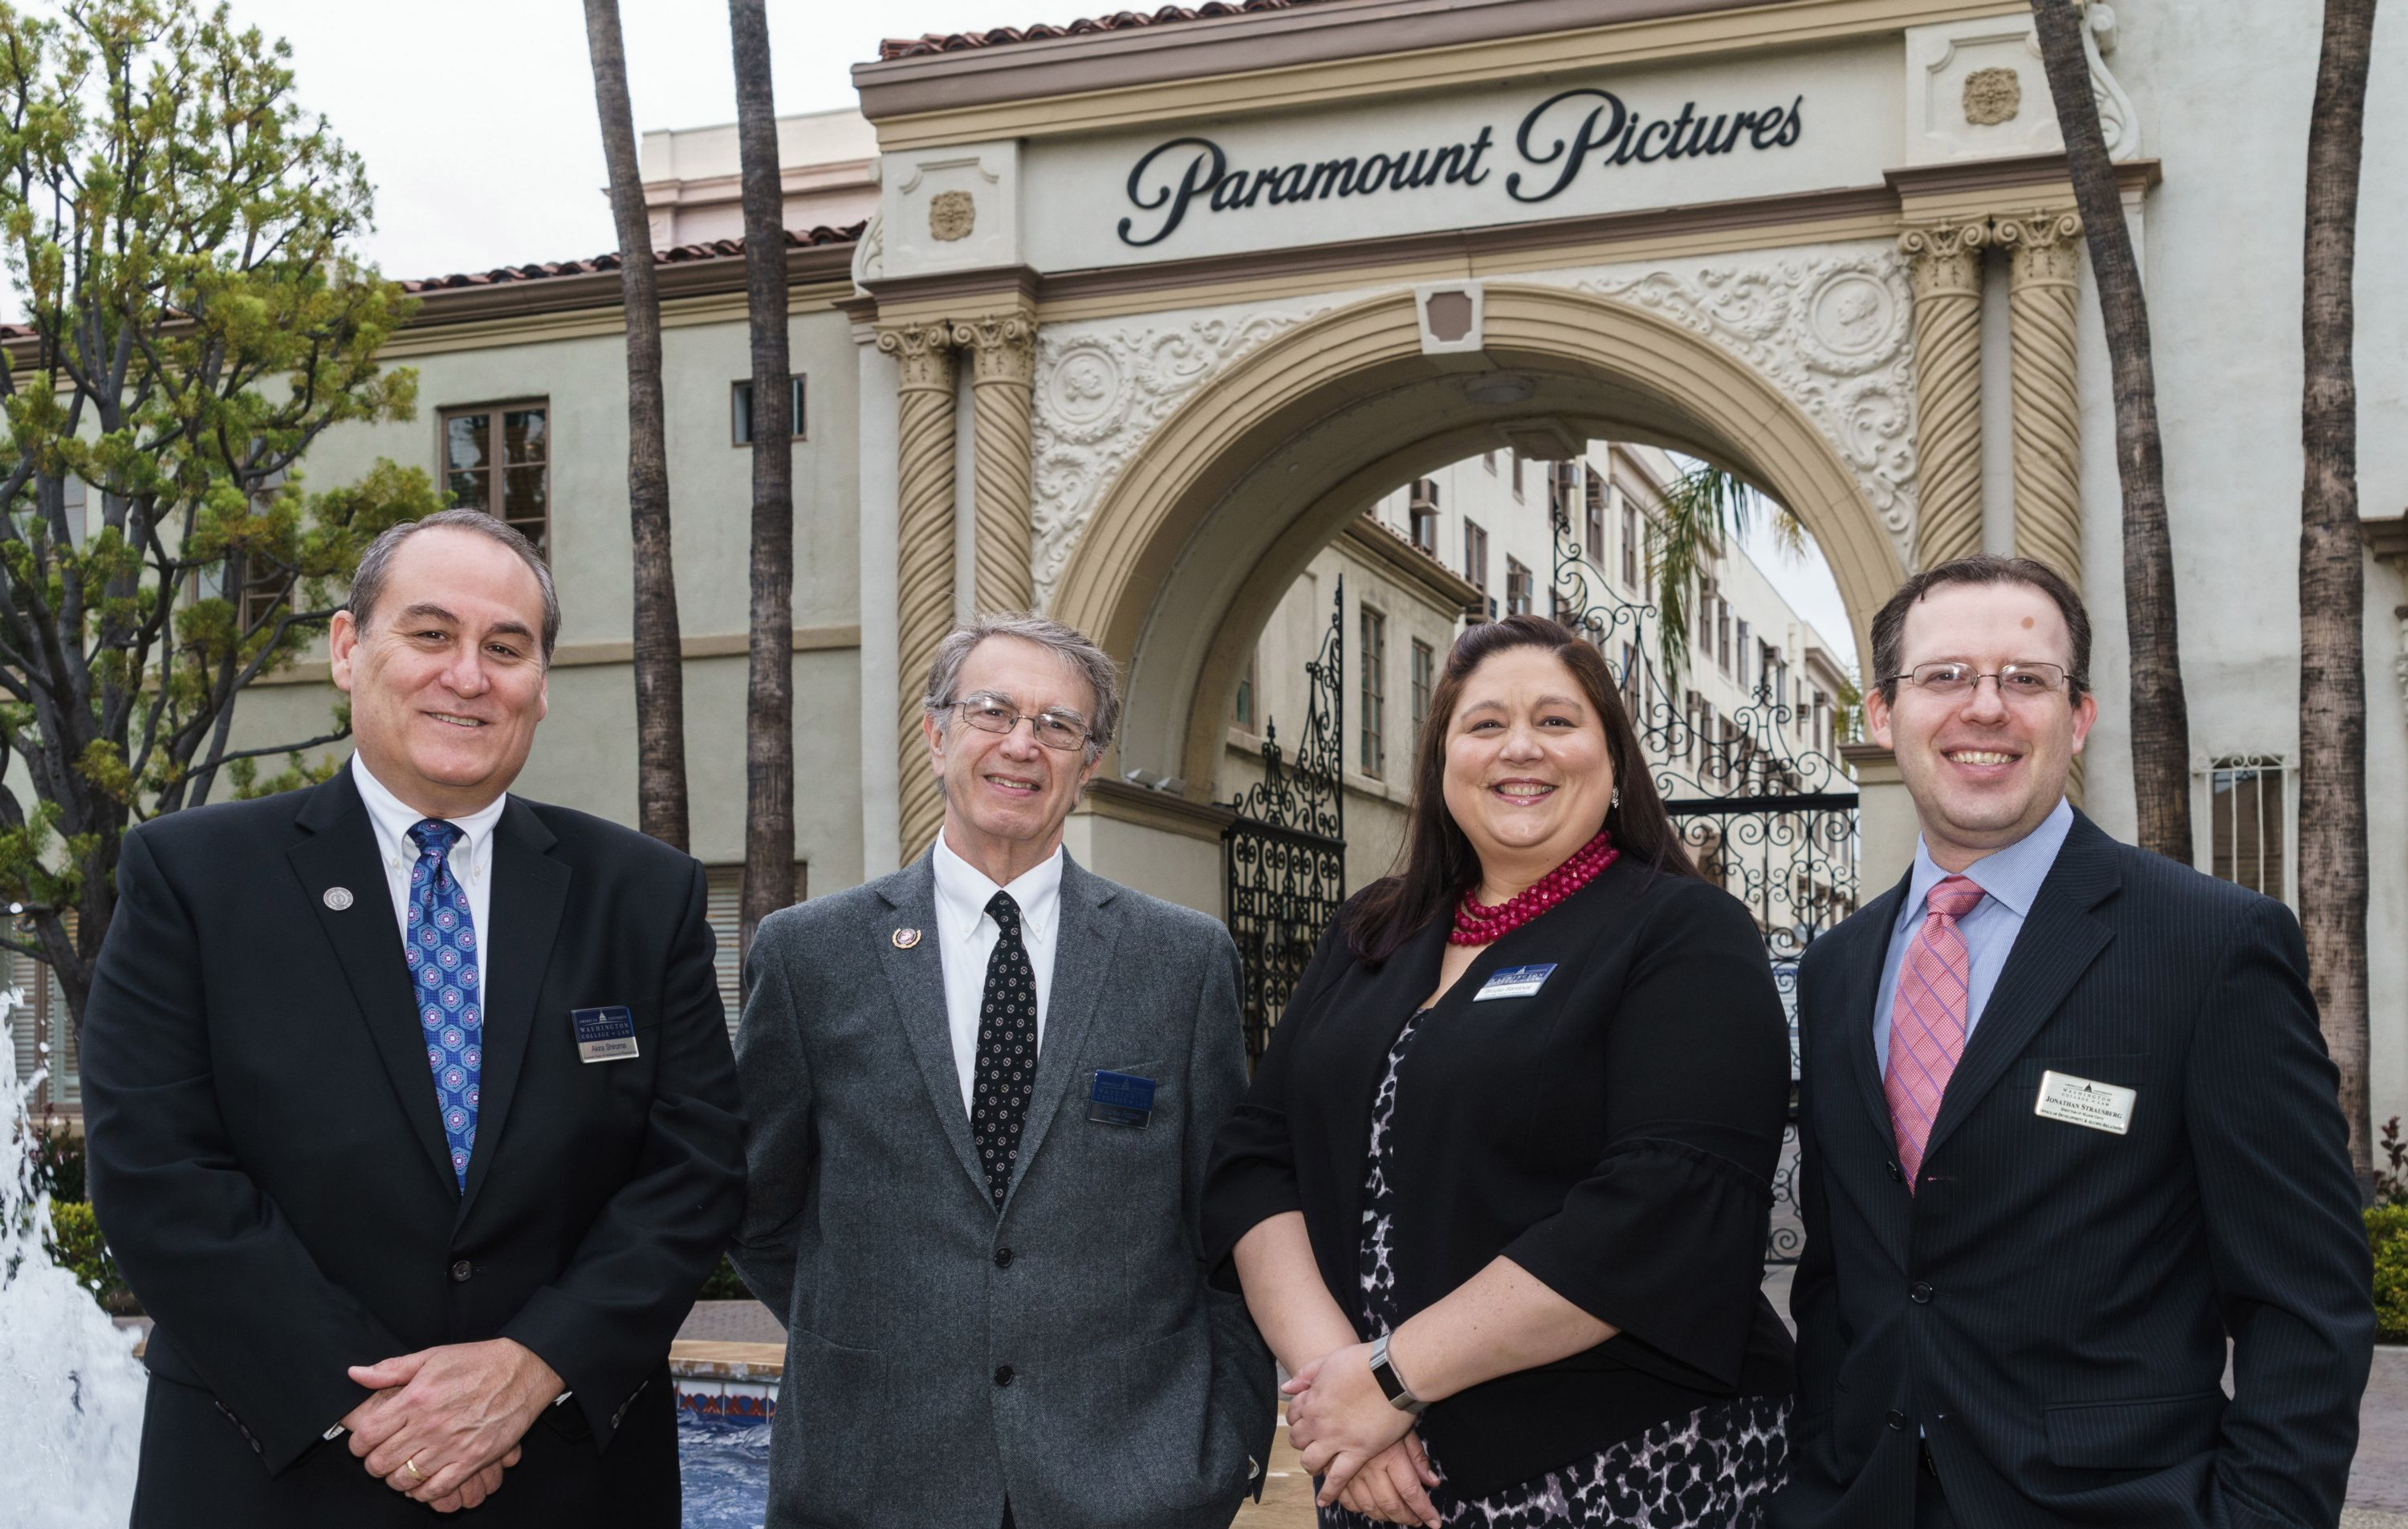 Assistant Dean of Admissions Akira Shiroma, Professor Andrew F. Popper, Associate Director of Admissions Brooke Sandoval, and former Director of Major Gifts Jonathan Strausberg.